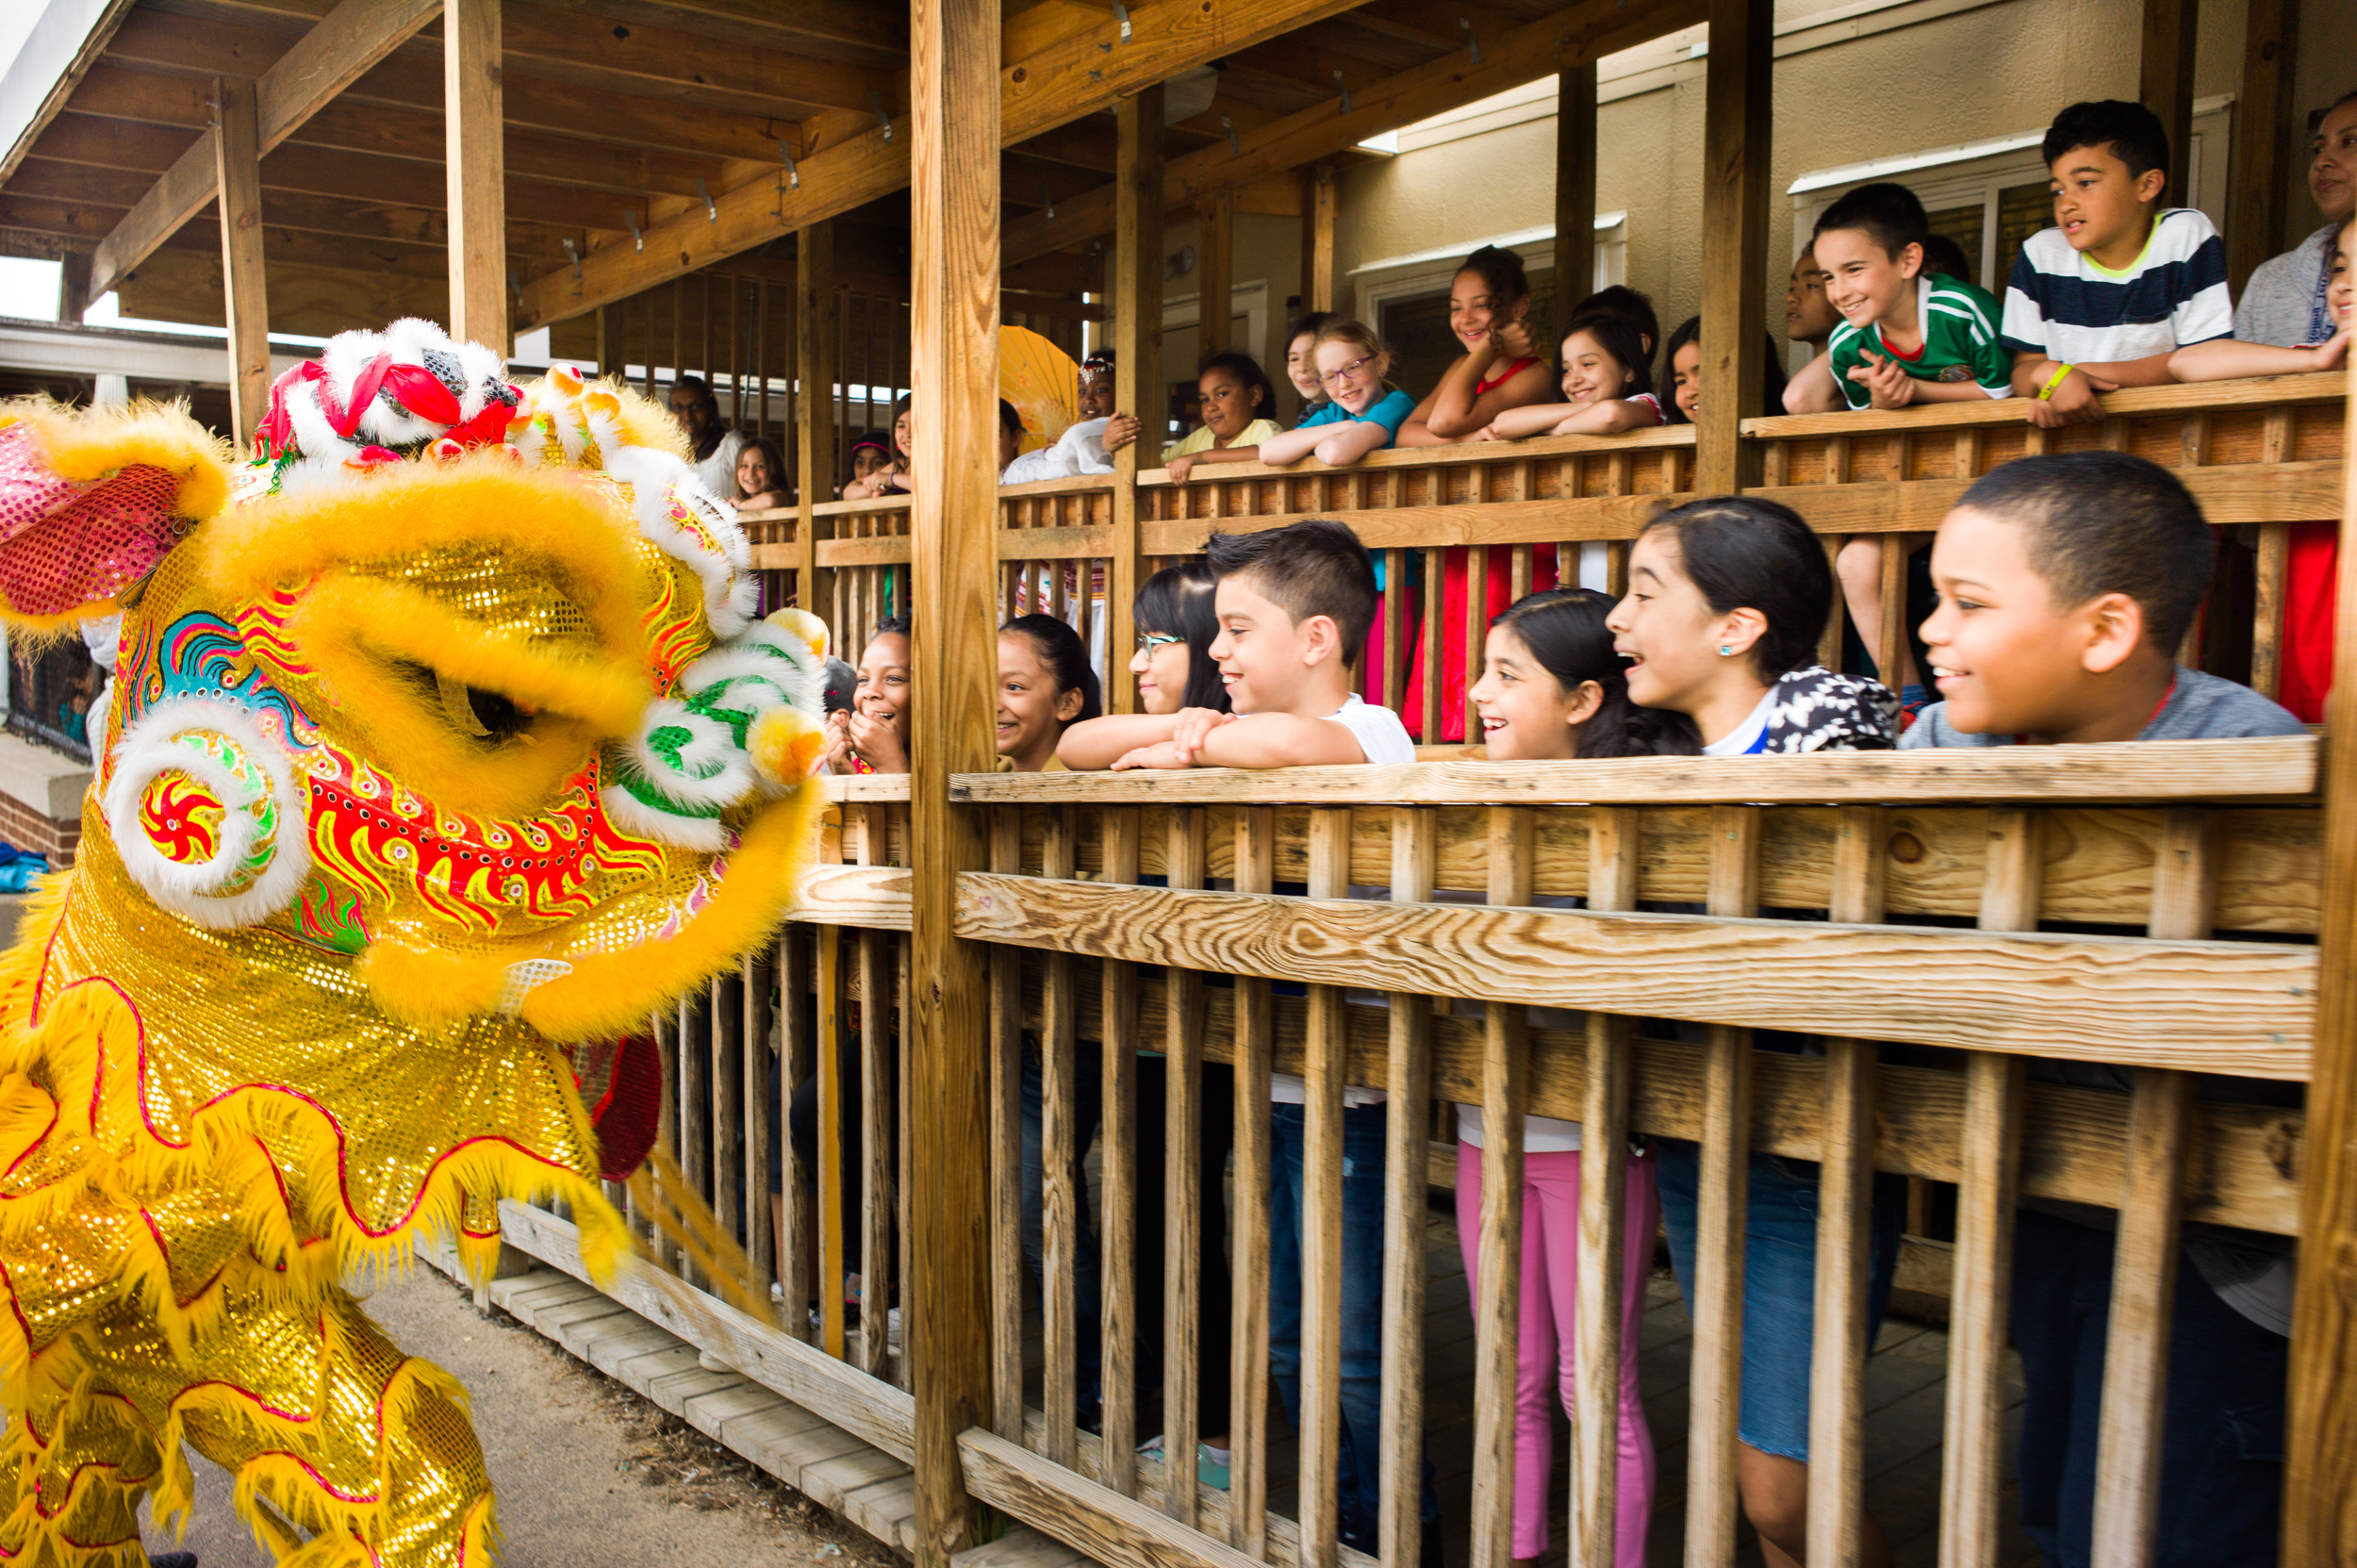 The Lion dancers led the students in a parade from the assembly throughout the school. Here they stopped to give a short performance to the third graders.